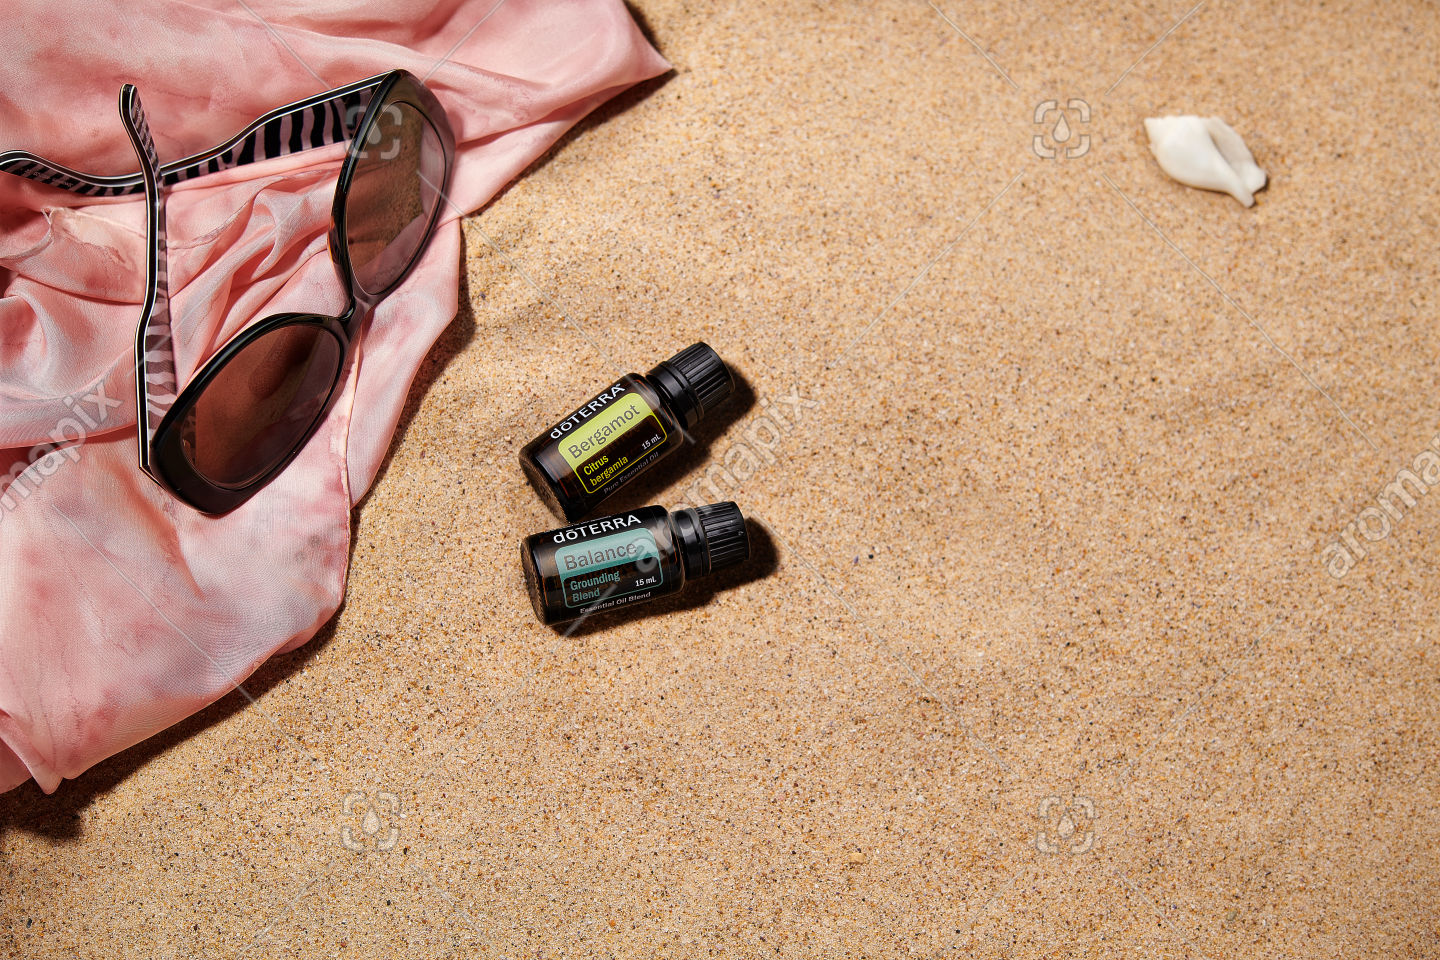 doTERRA Bergamot and Balance with accessories on sand